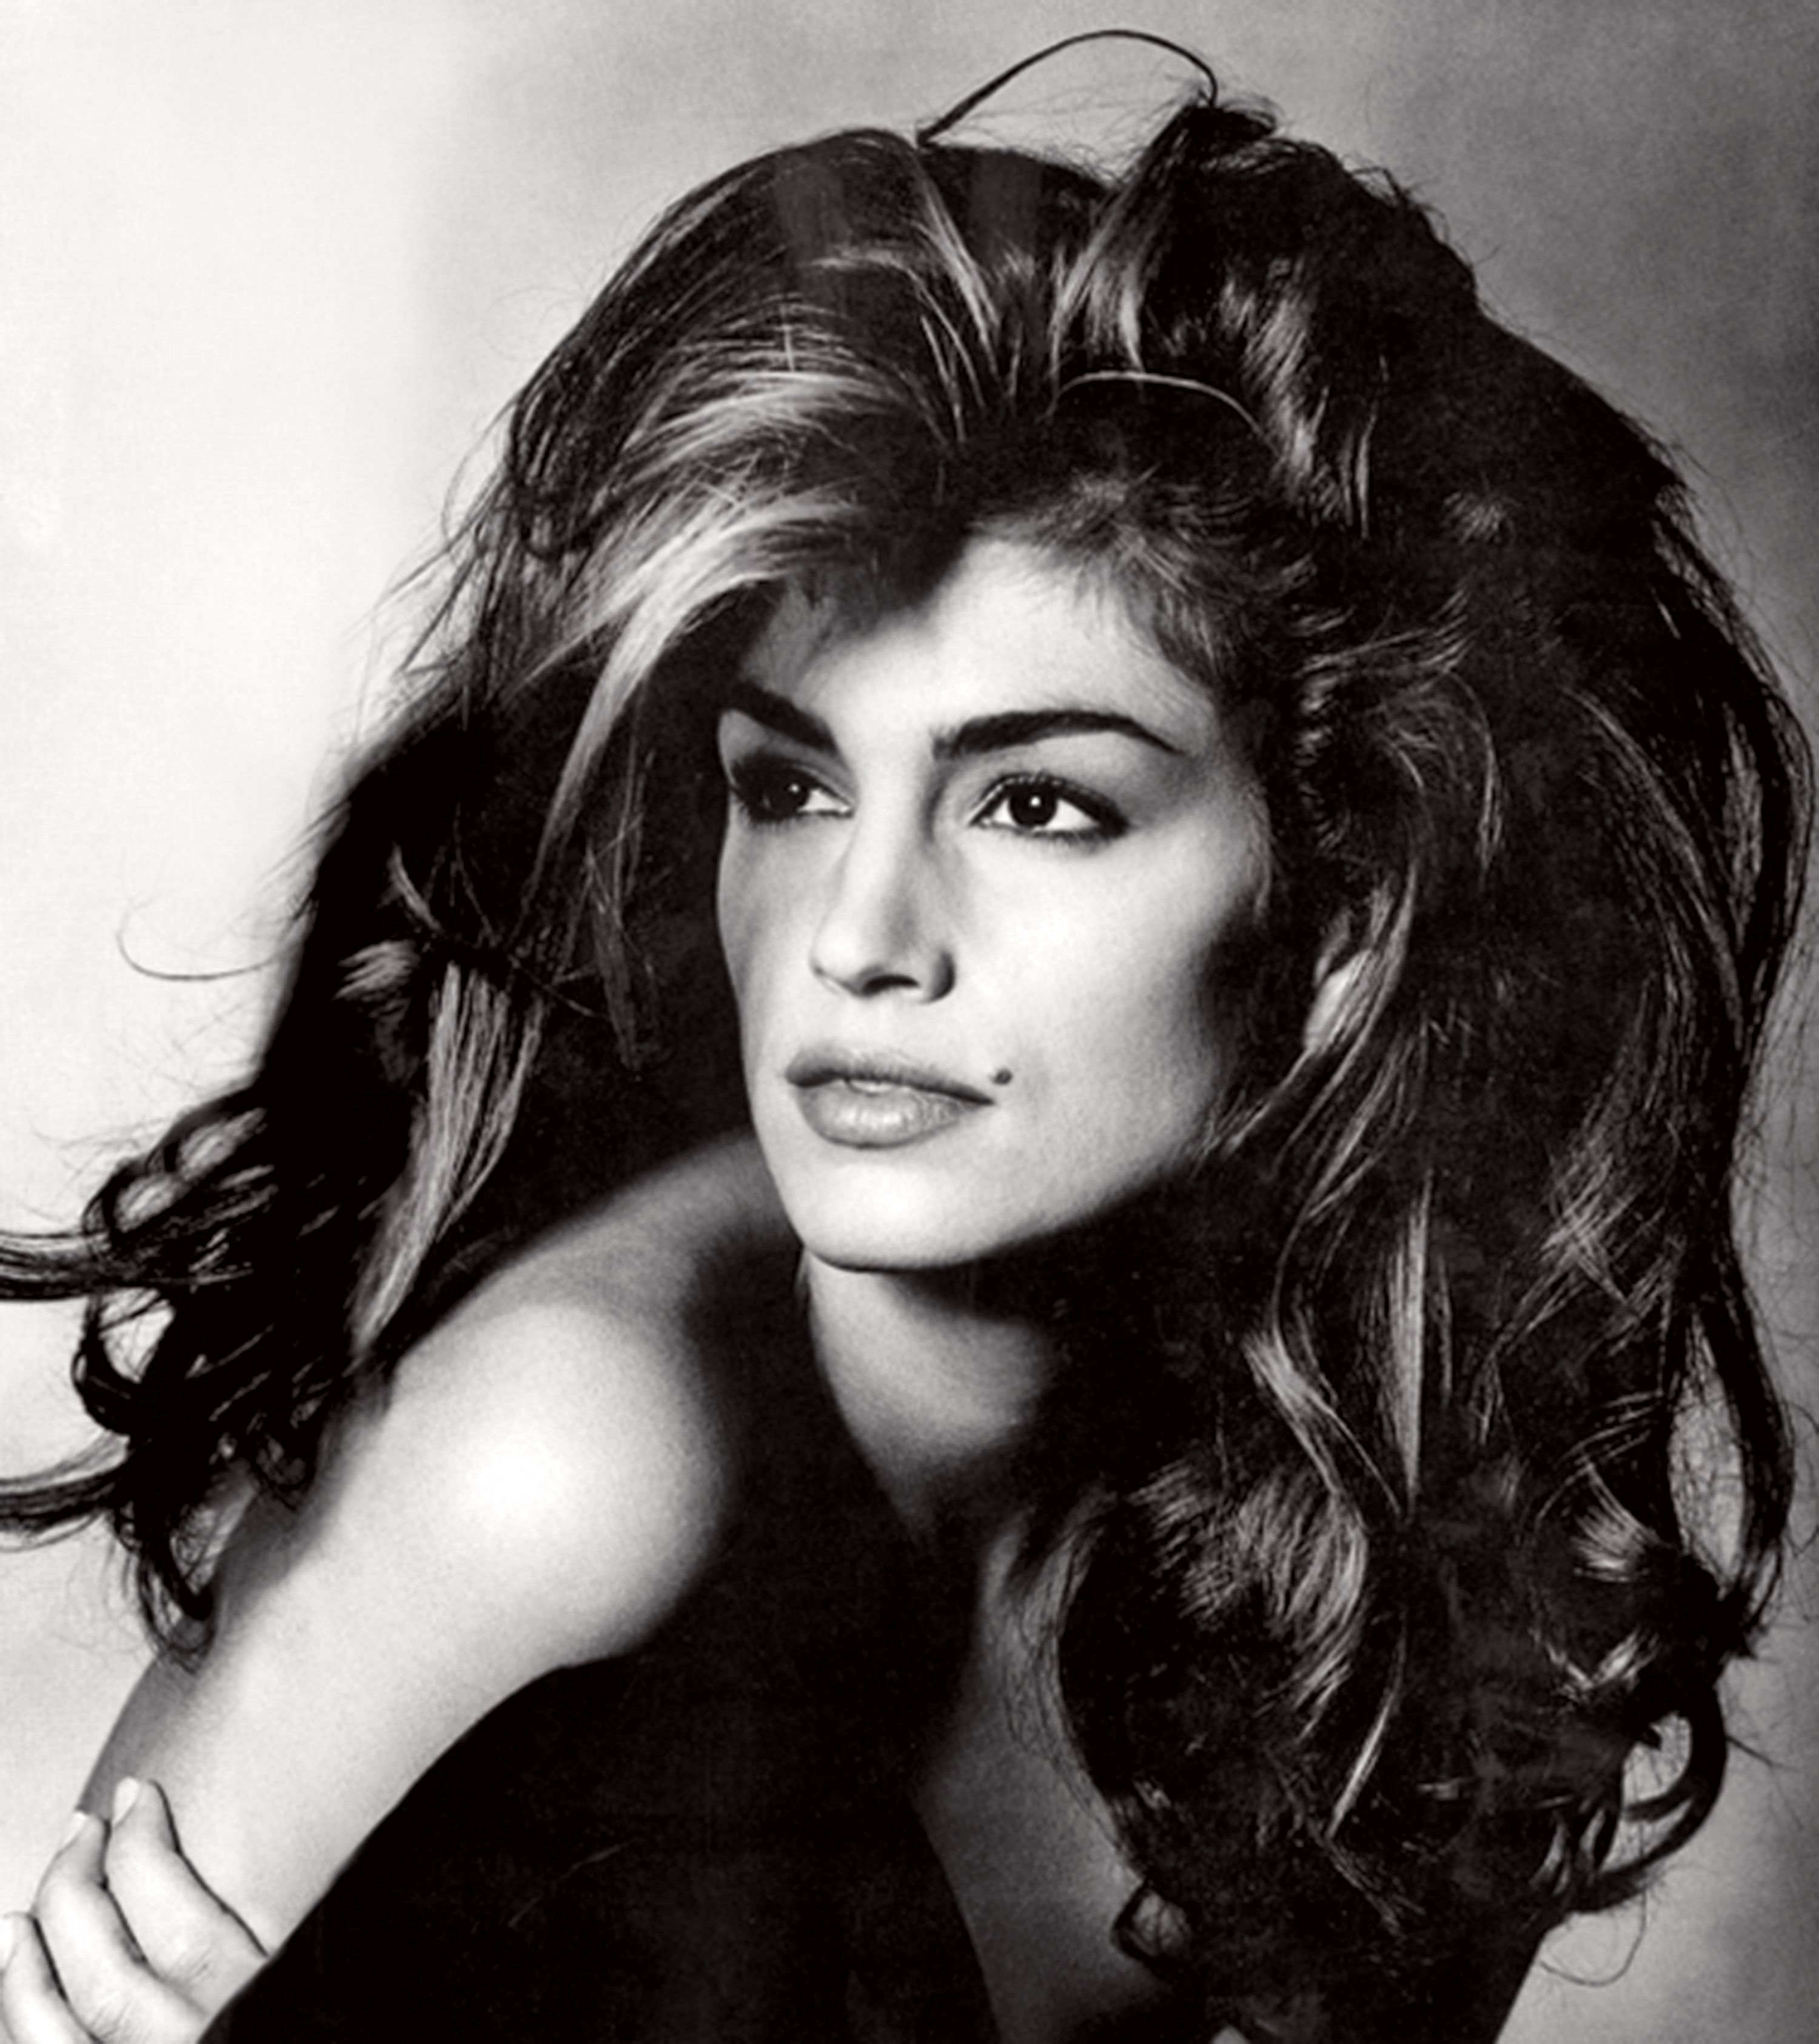 The 9 Best Beauty Marks Of All Time From Cindy Crawford To Marilyn Monroe Cindy Crawford Beauty Cindy Crawford Beauty Mark